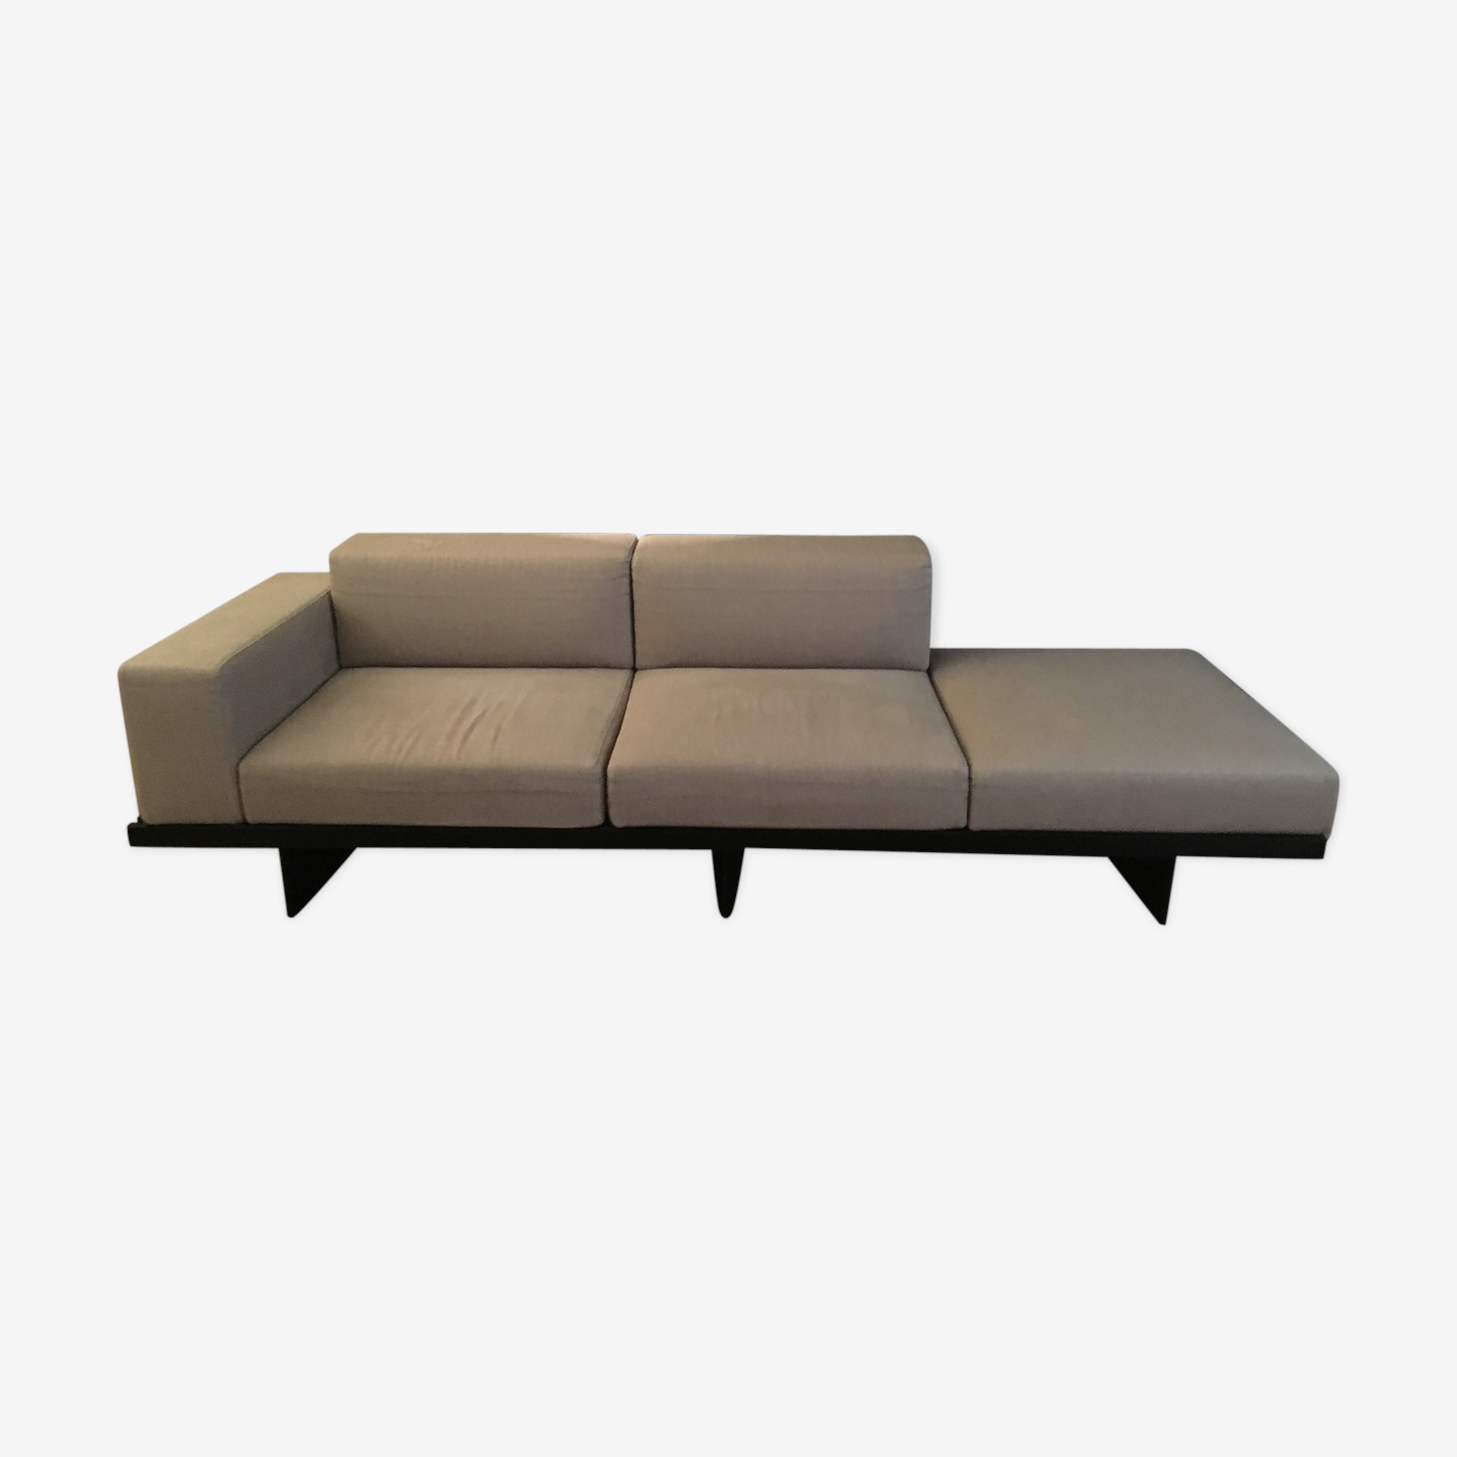 Sofa 'refolo' by Charlotte Perriand for Cassina